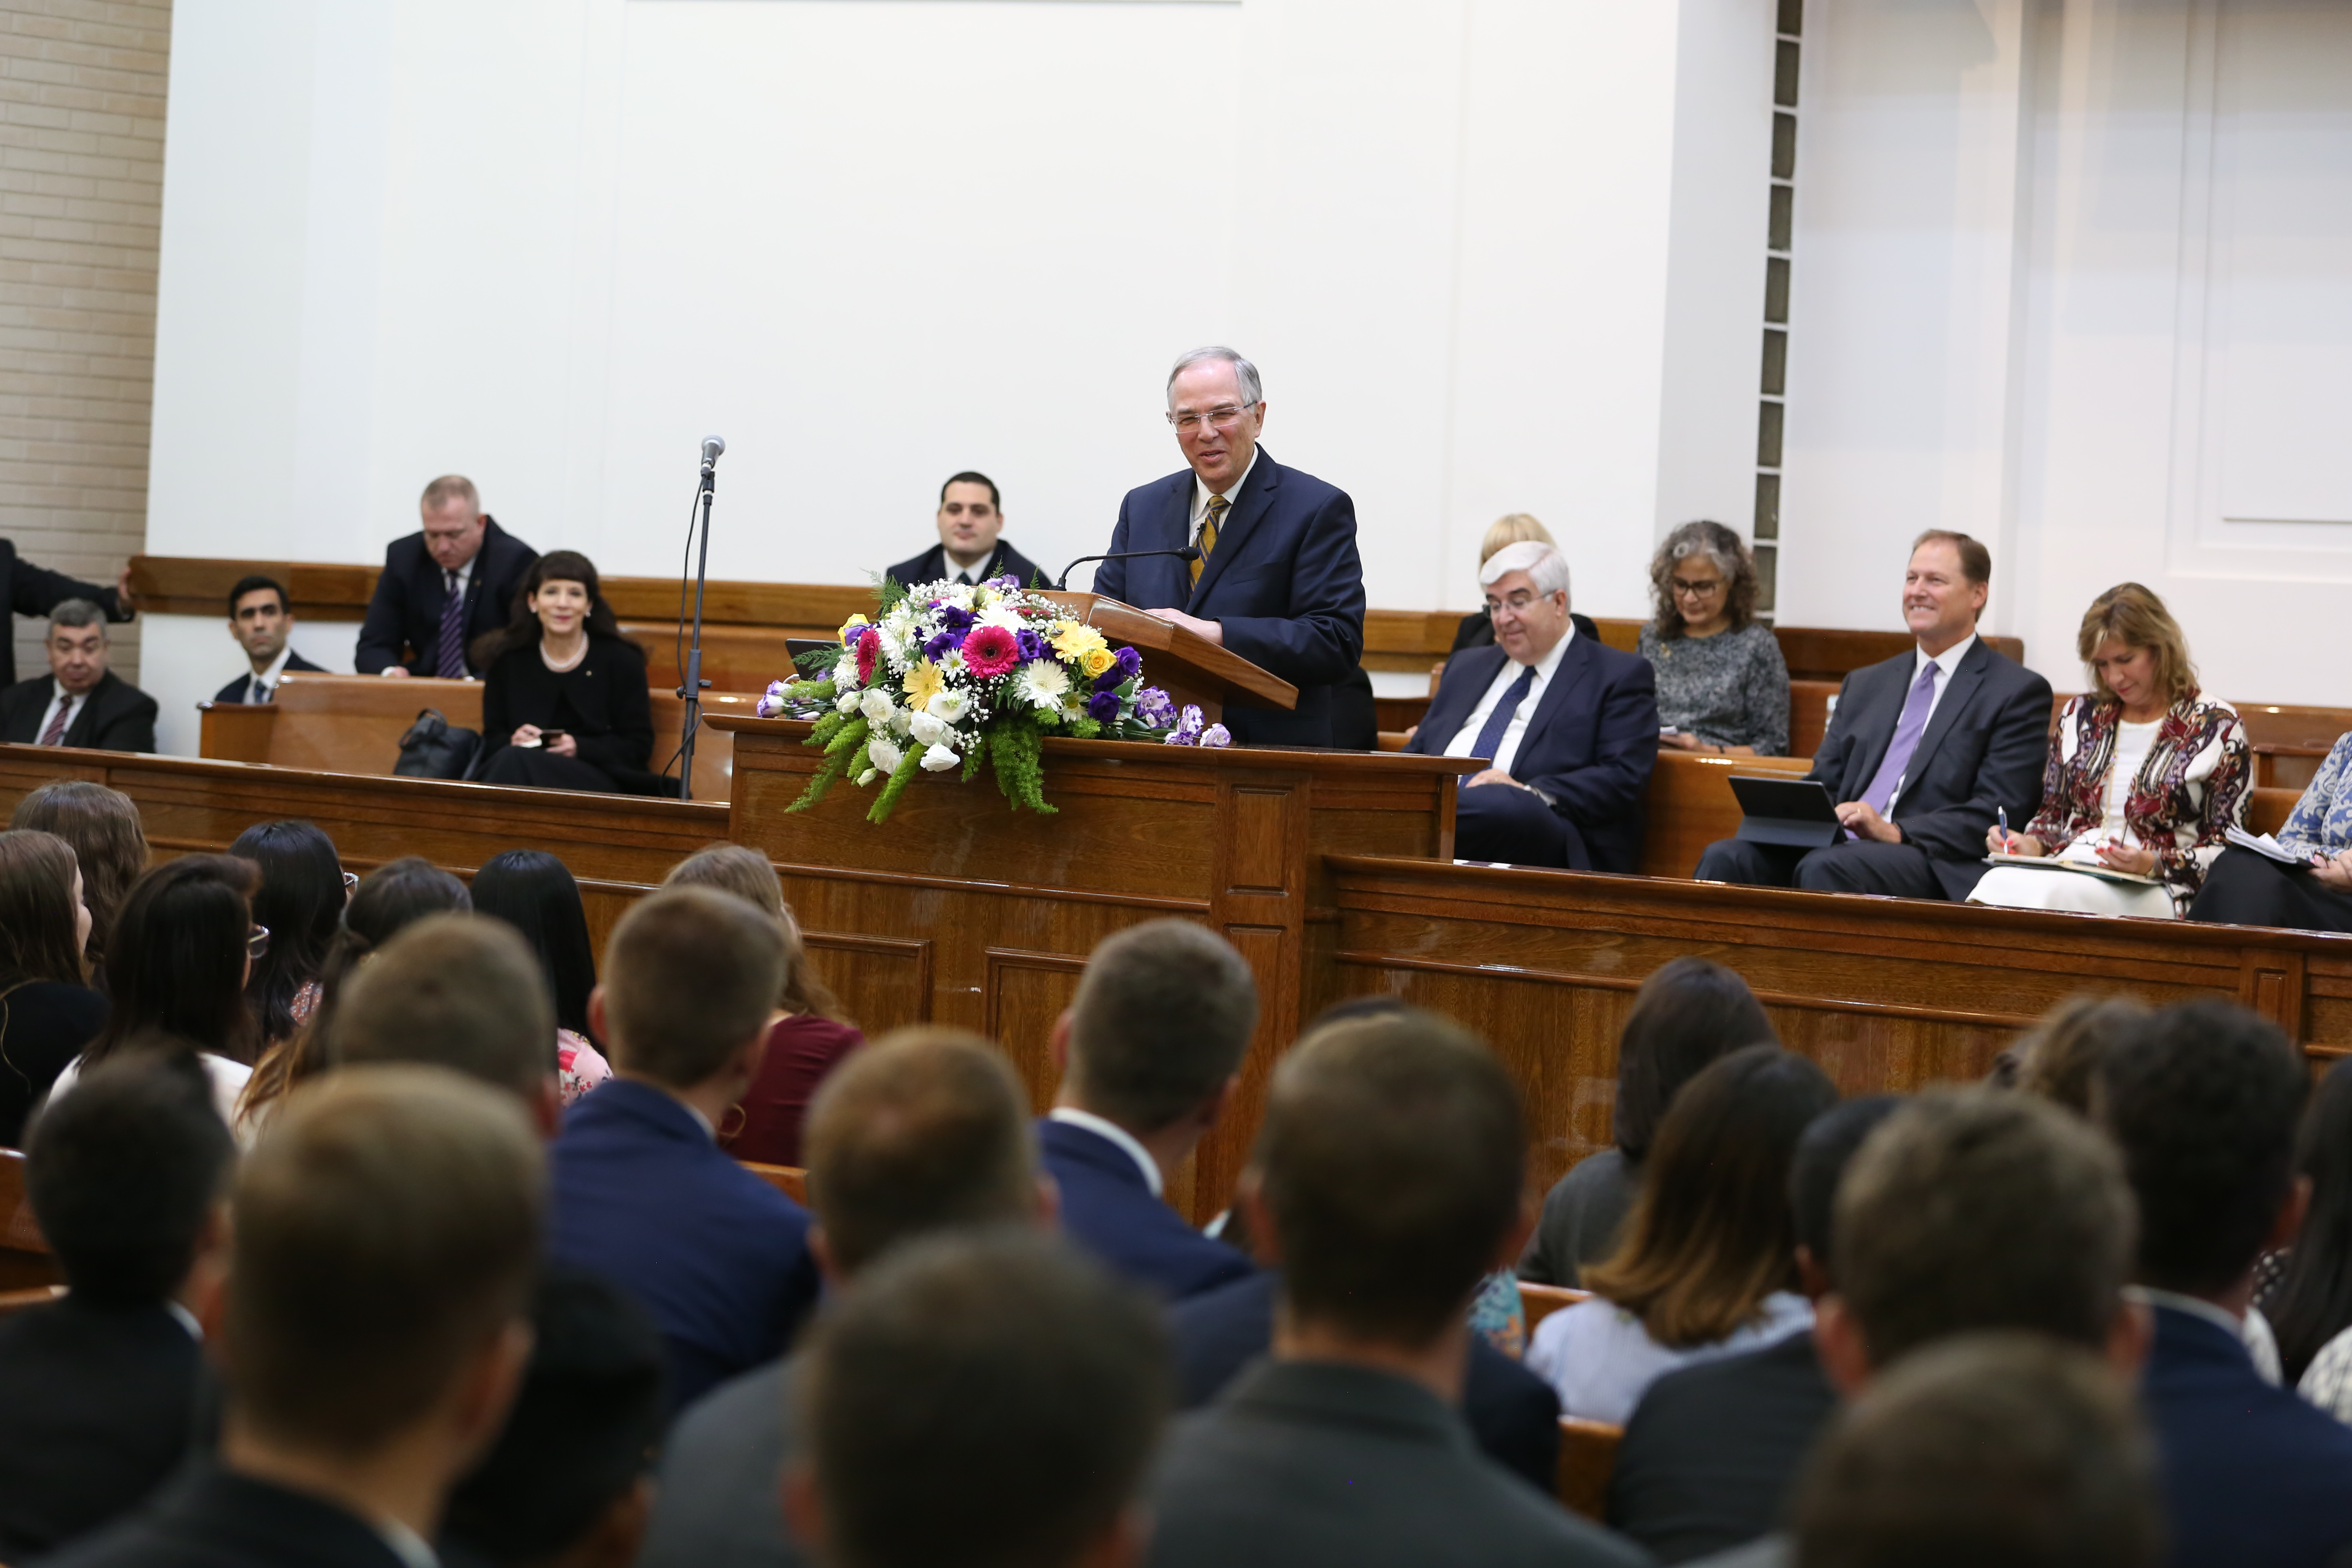 Elder Neil L. Andersen of the Quorum of the Twelve Apostles addresses missionaries in Argentina during an April 2019 trip to South America.